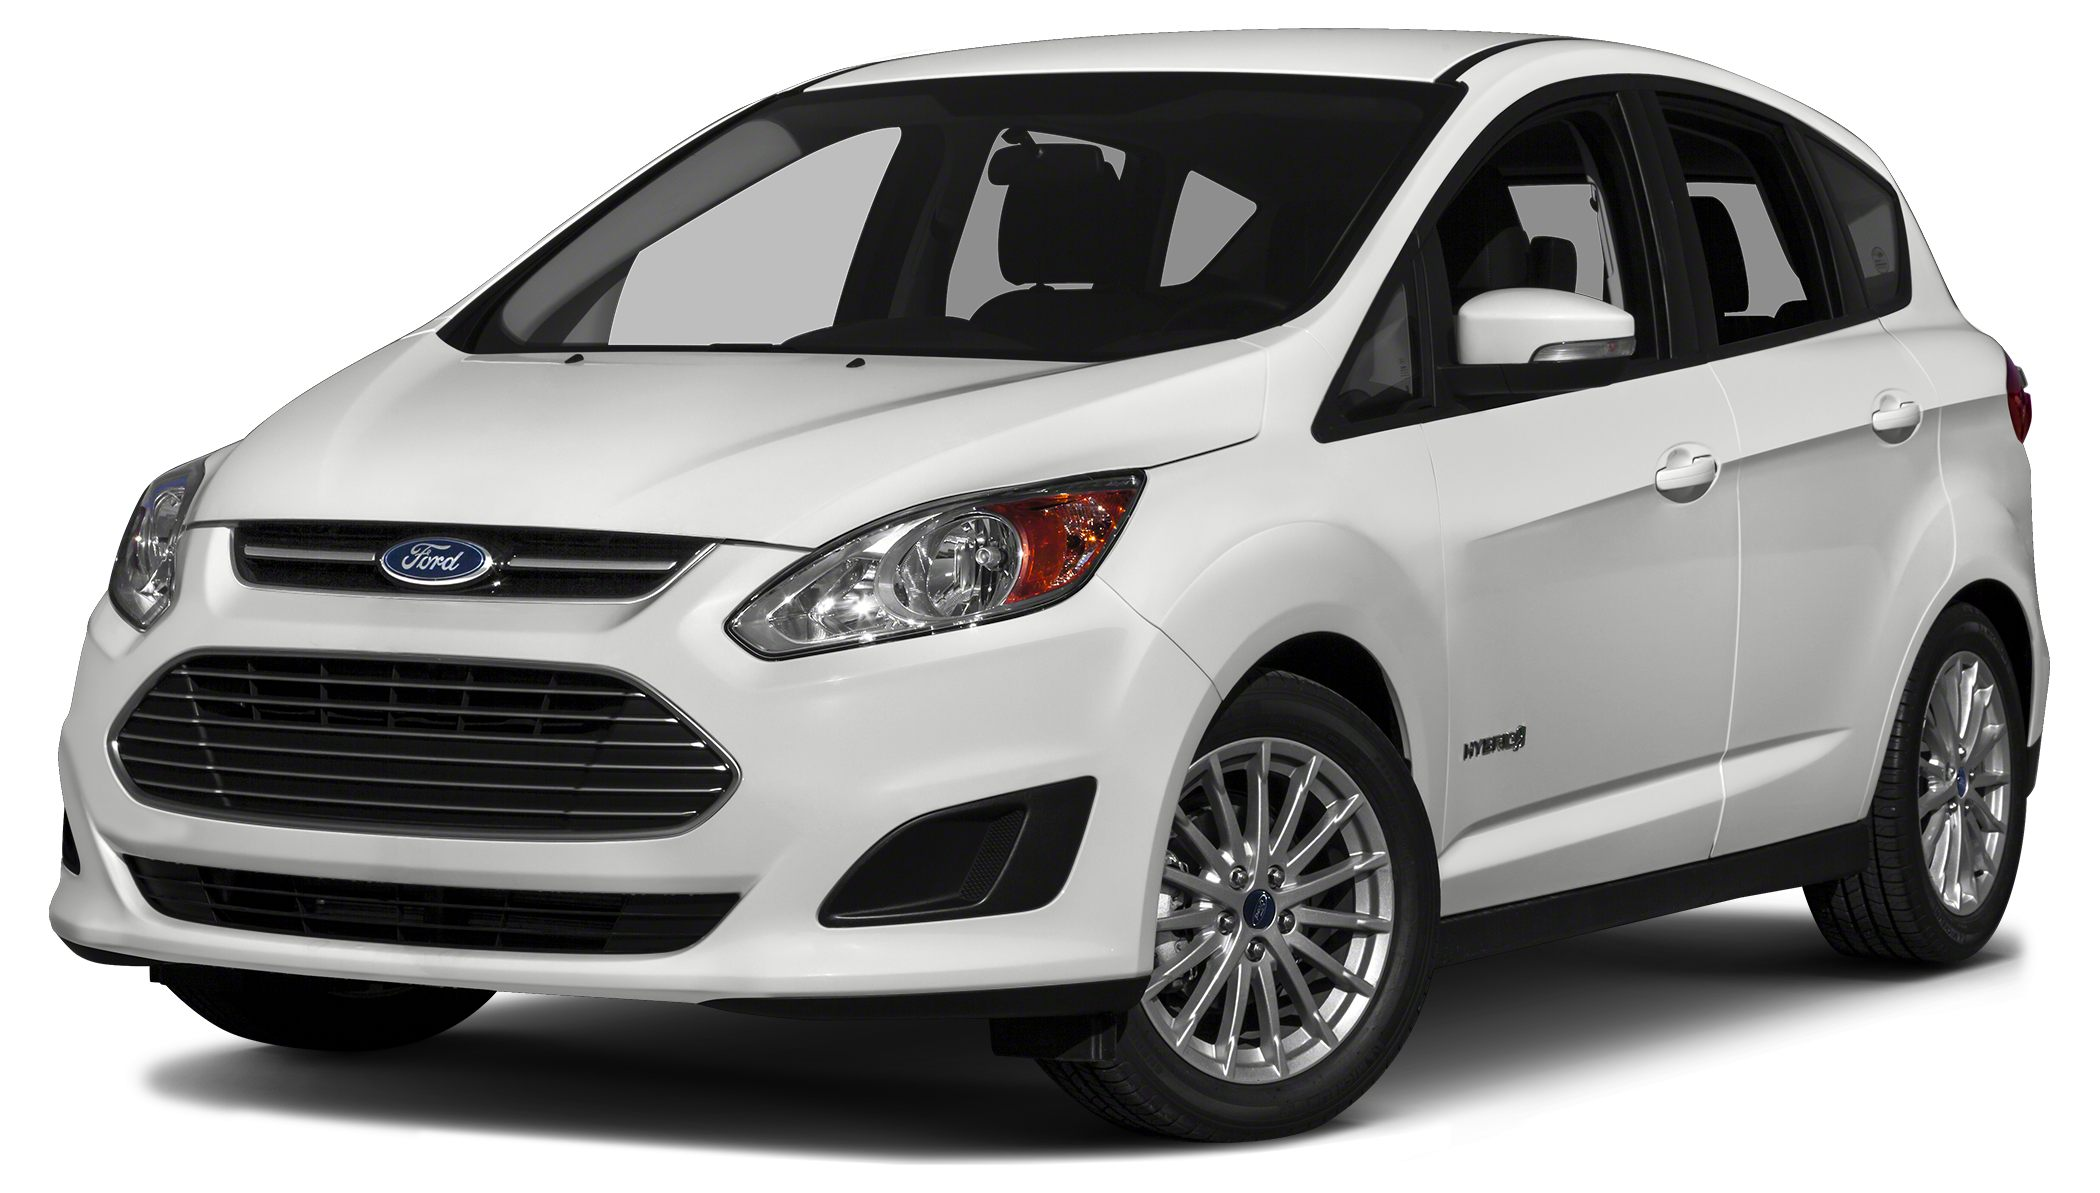 2016 Ford C-Max Hybrid SE Introducing the 2016 Ford C-Max Hybrid The safety you need and the feat